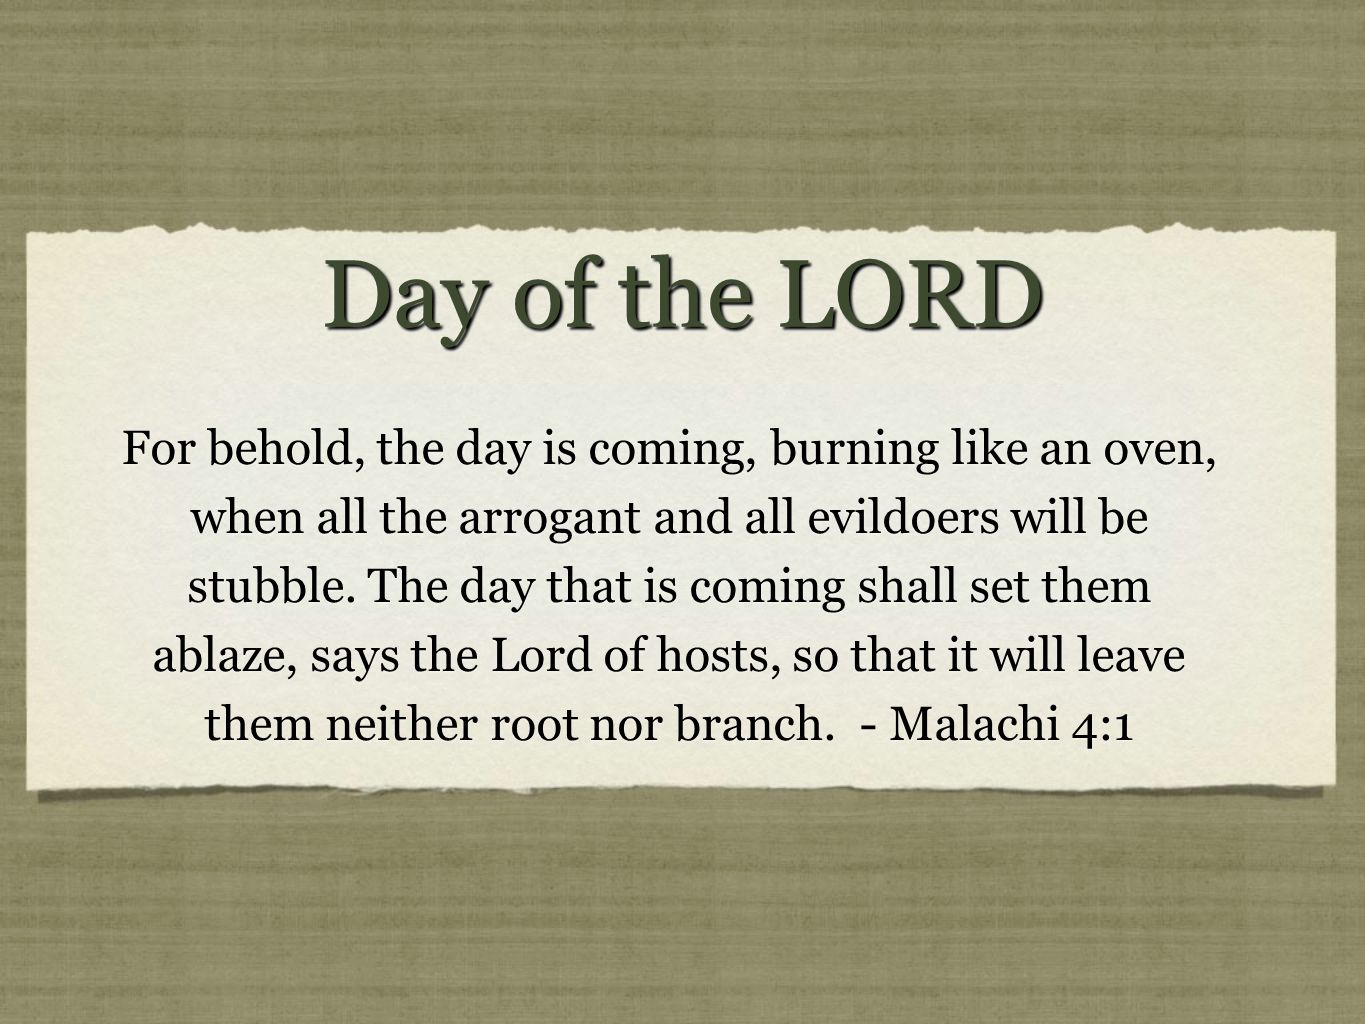 the day is coming when